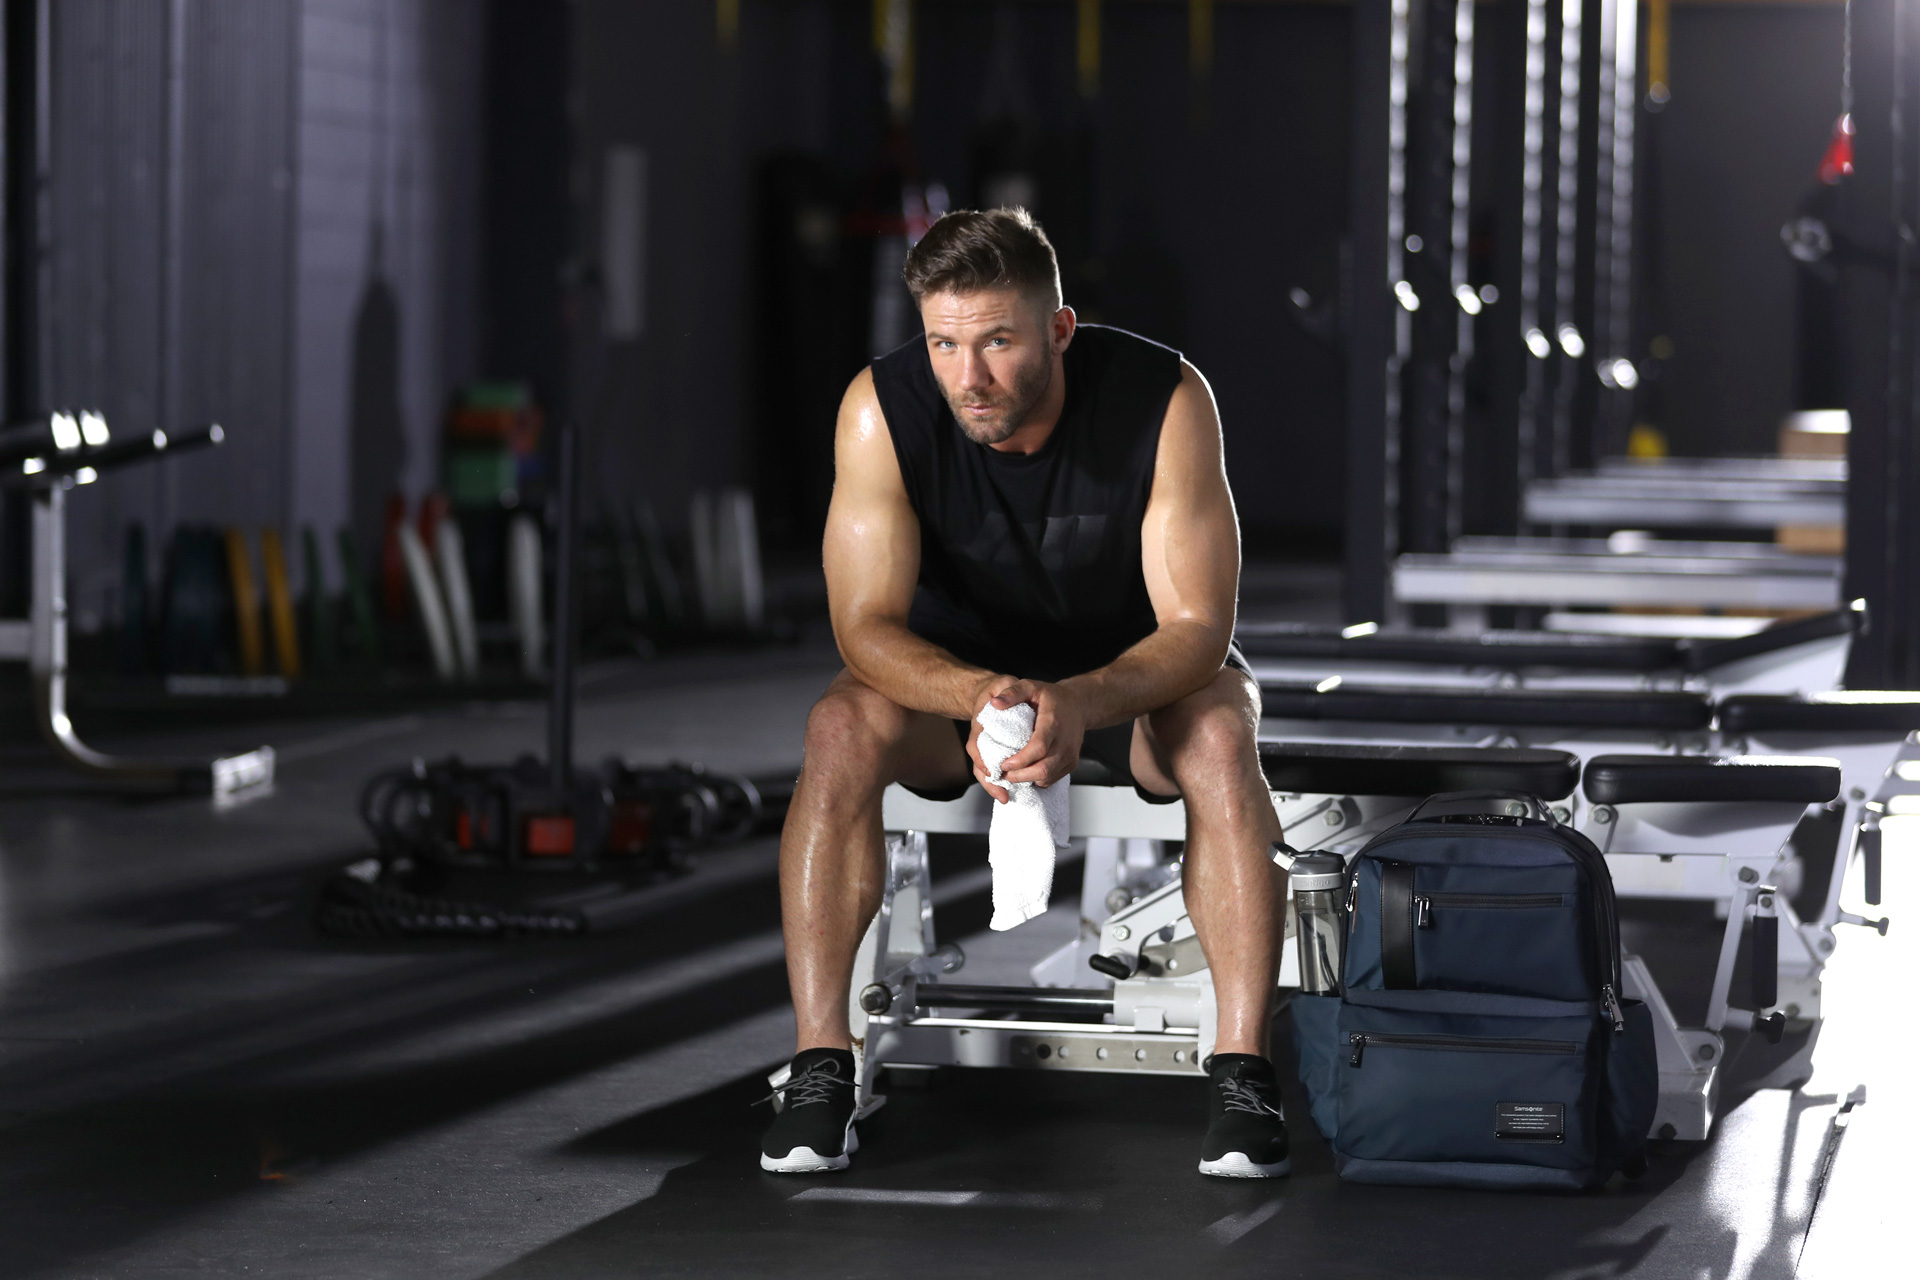 New England Patriots receiver Julian Edelman is shown in a weight room.